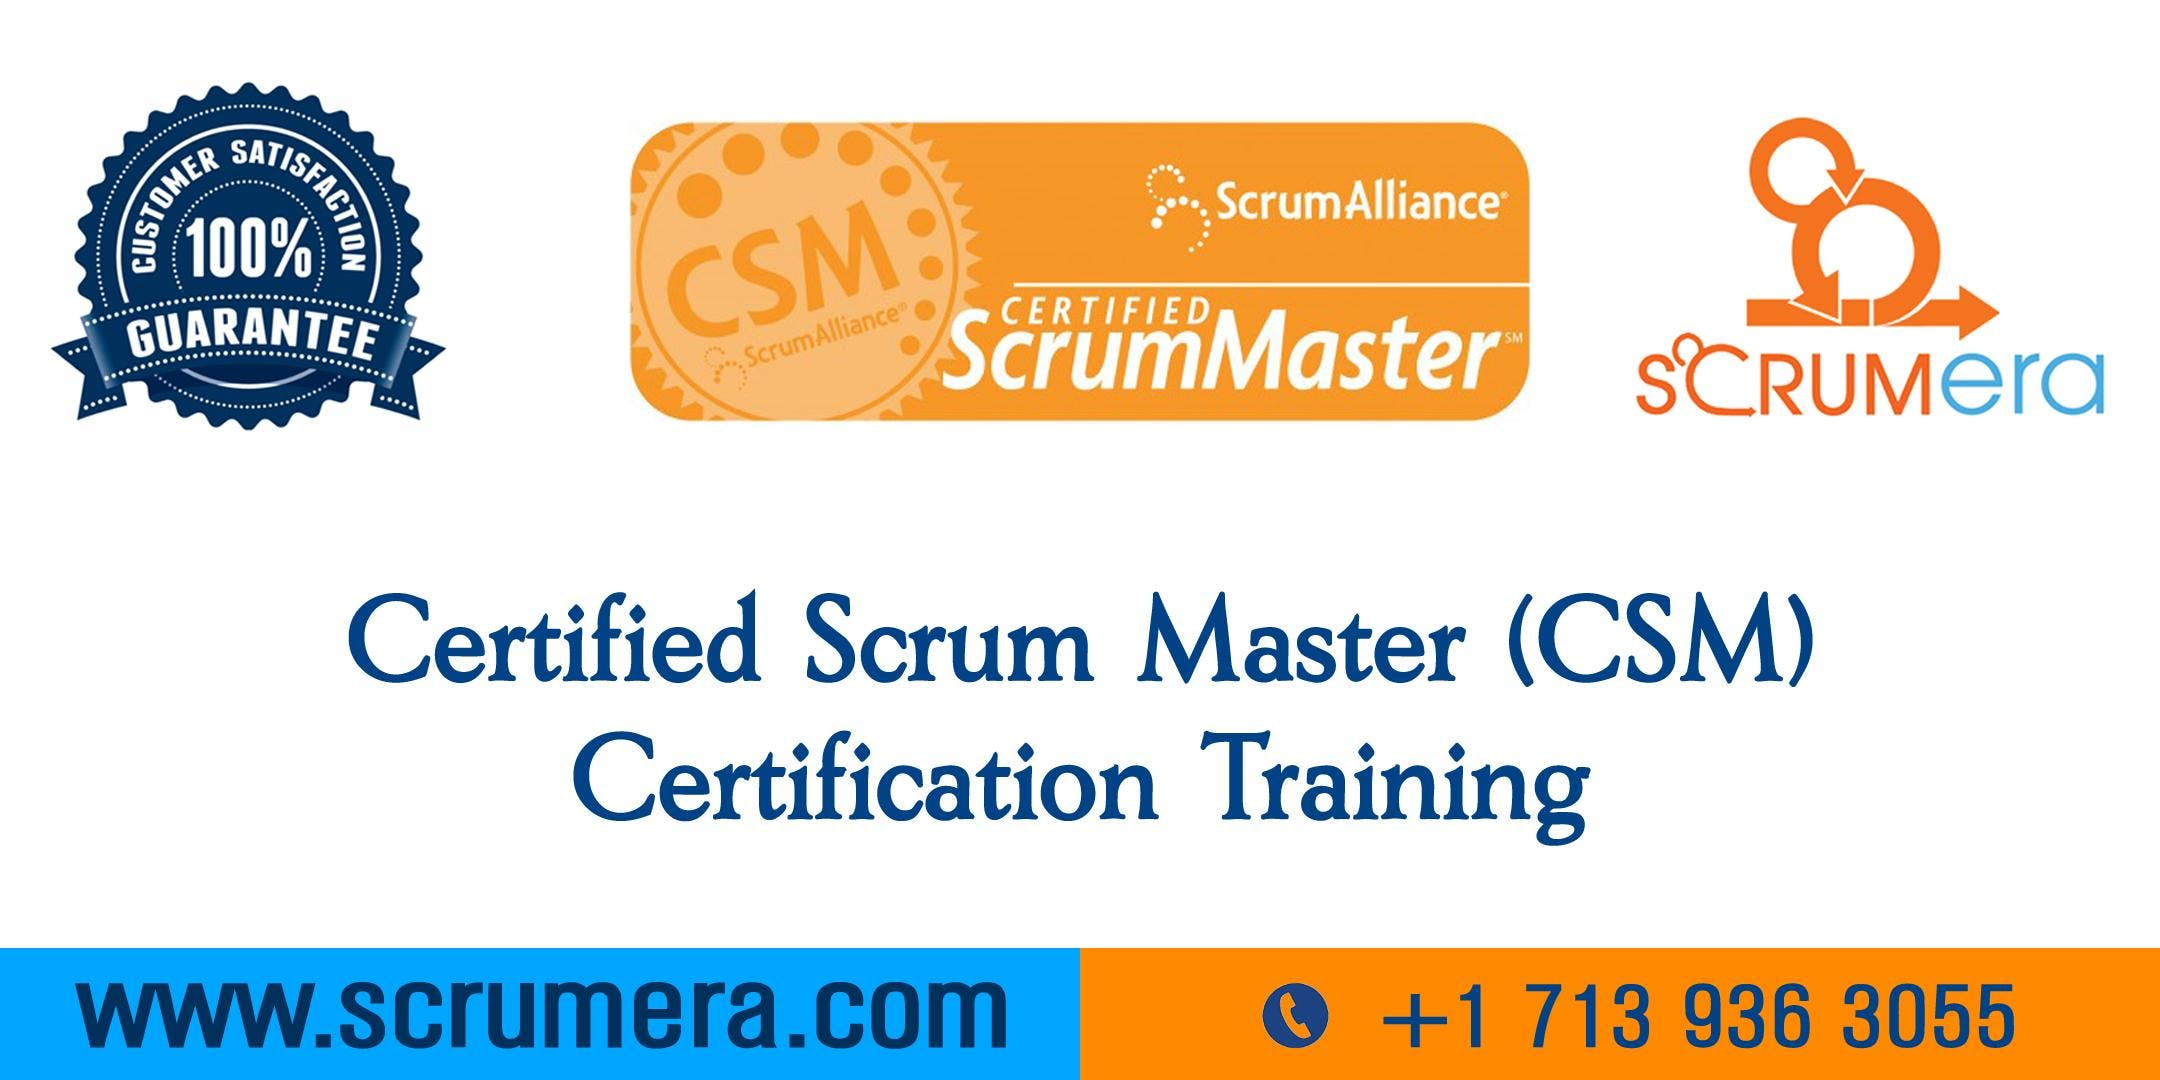 Scrum Master Certification | CSM Training | CSM Certification Workshop | Certified Scrum Master (CSM) Training in Burbank, CA | ScrumERA